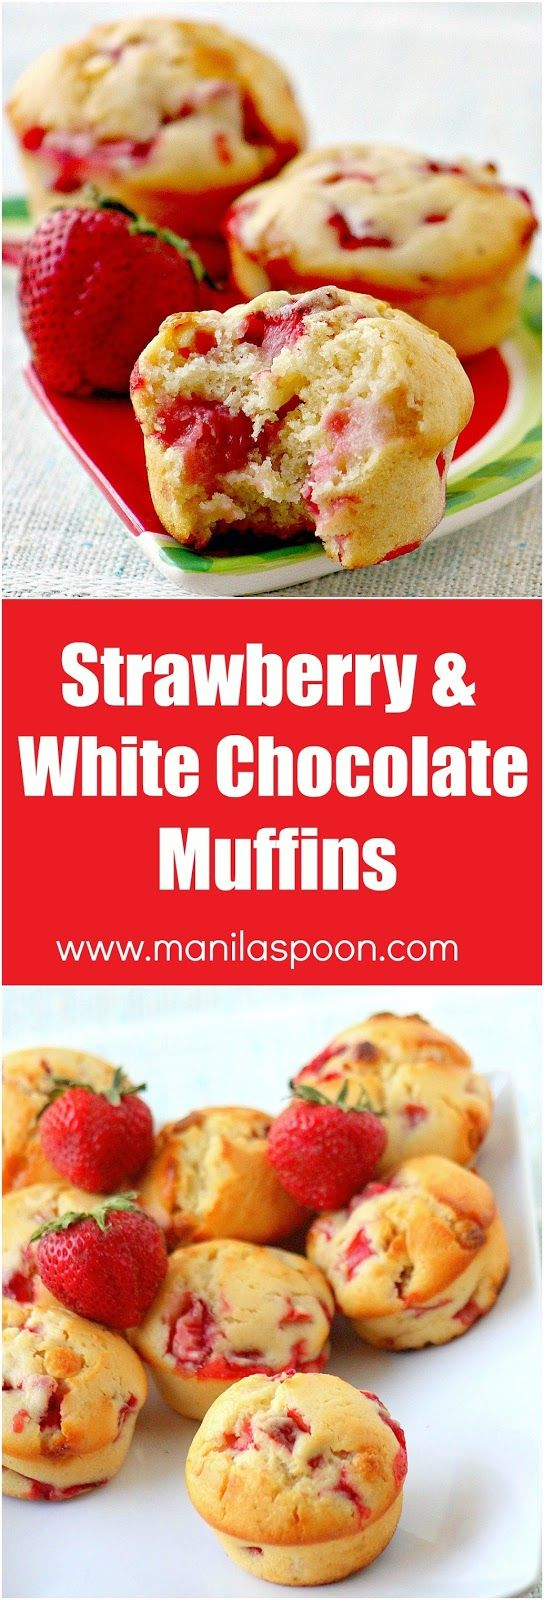 Moist, fruity and chocolaty fresh strawberry muffins with white chocolate are the best way to start your day! | manilaspoon.com